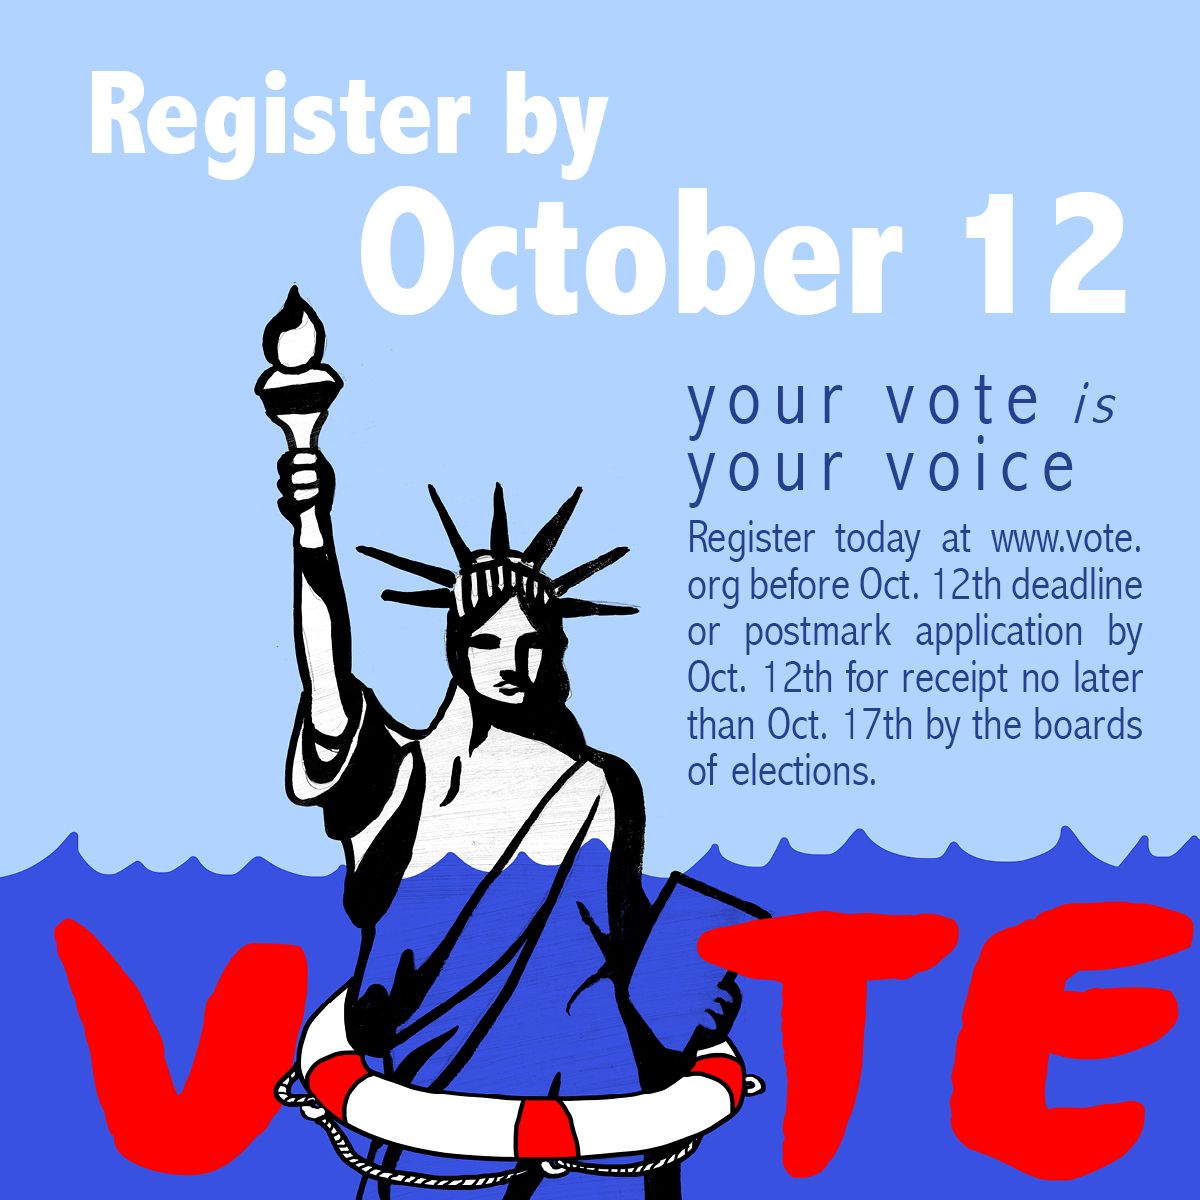 Power to the Polls Vote_poster_liberty_oct12 (1).jpg